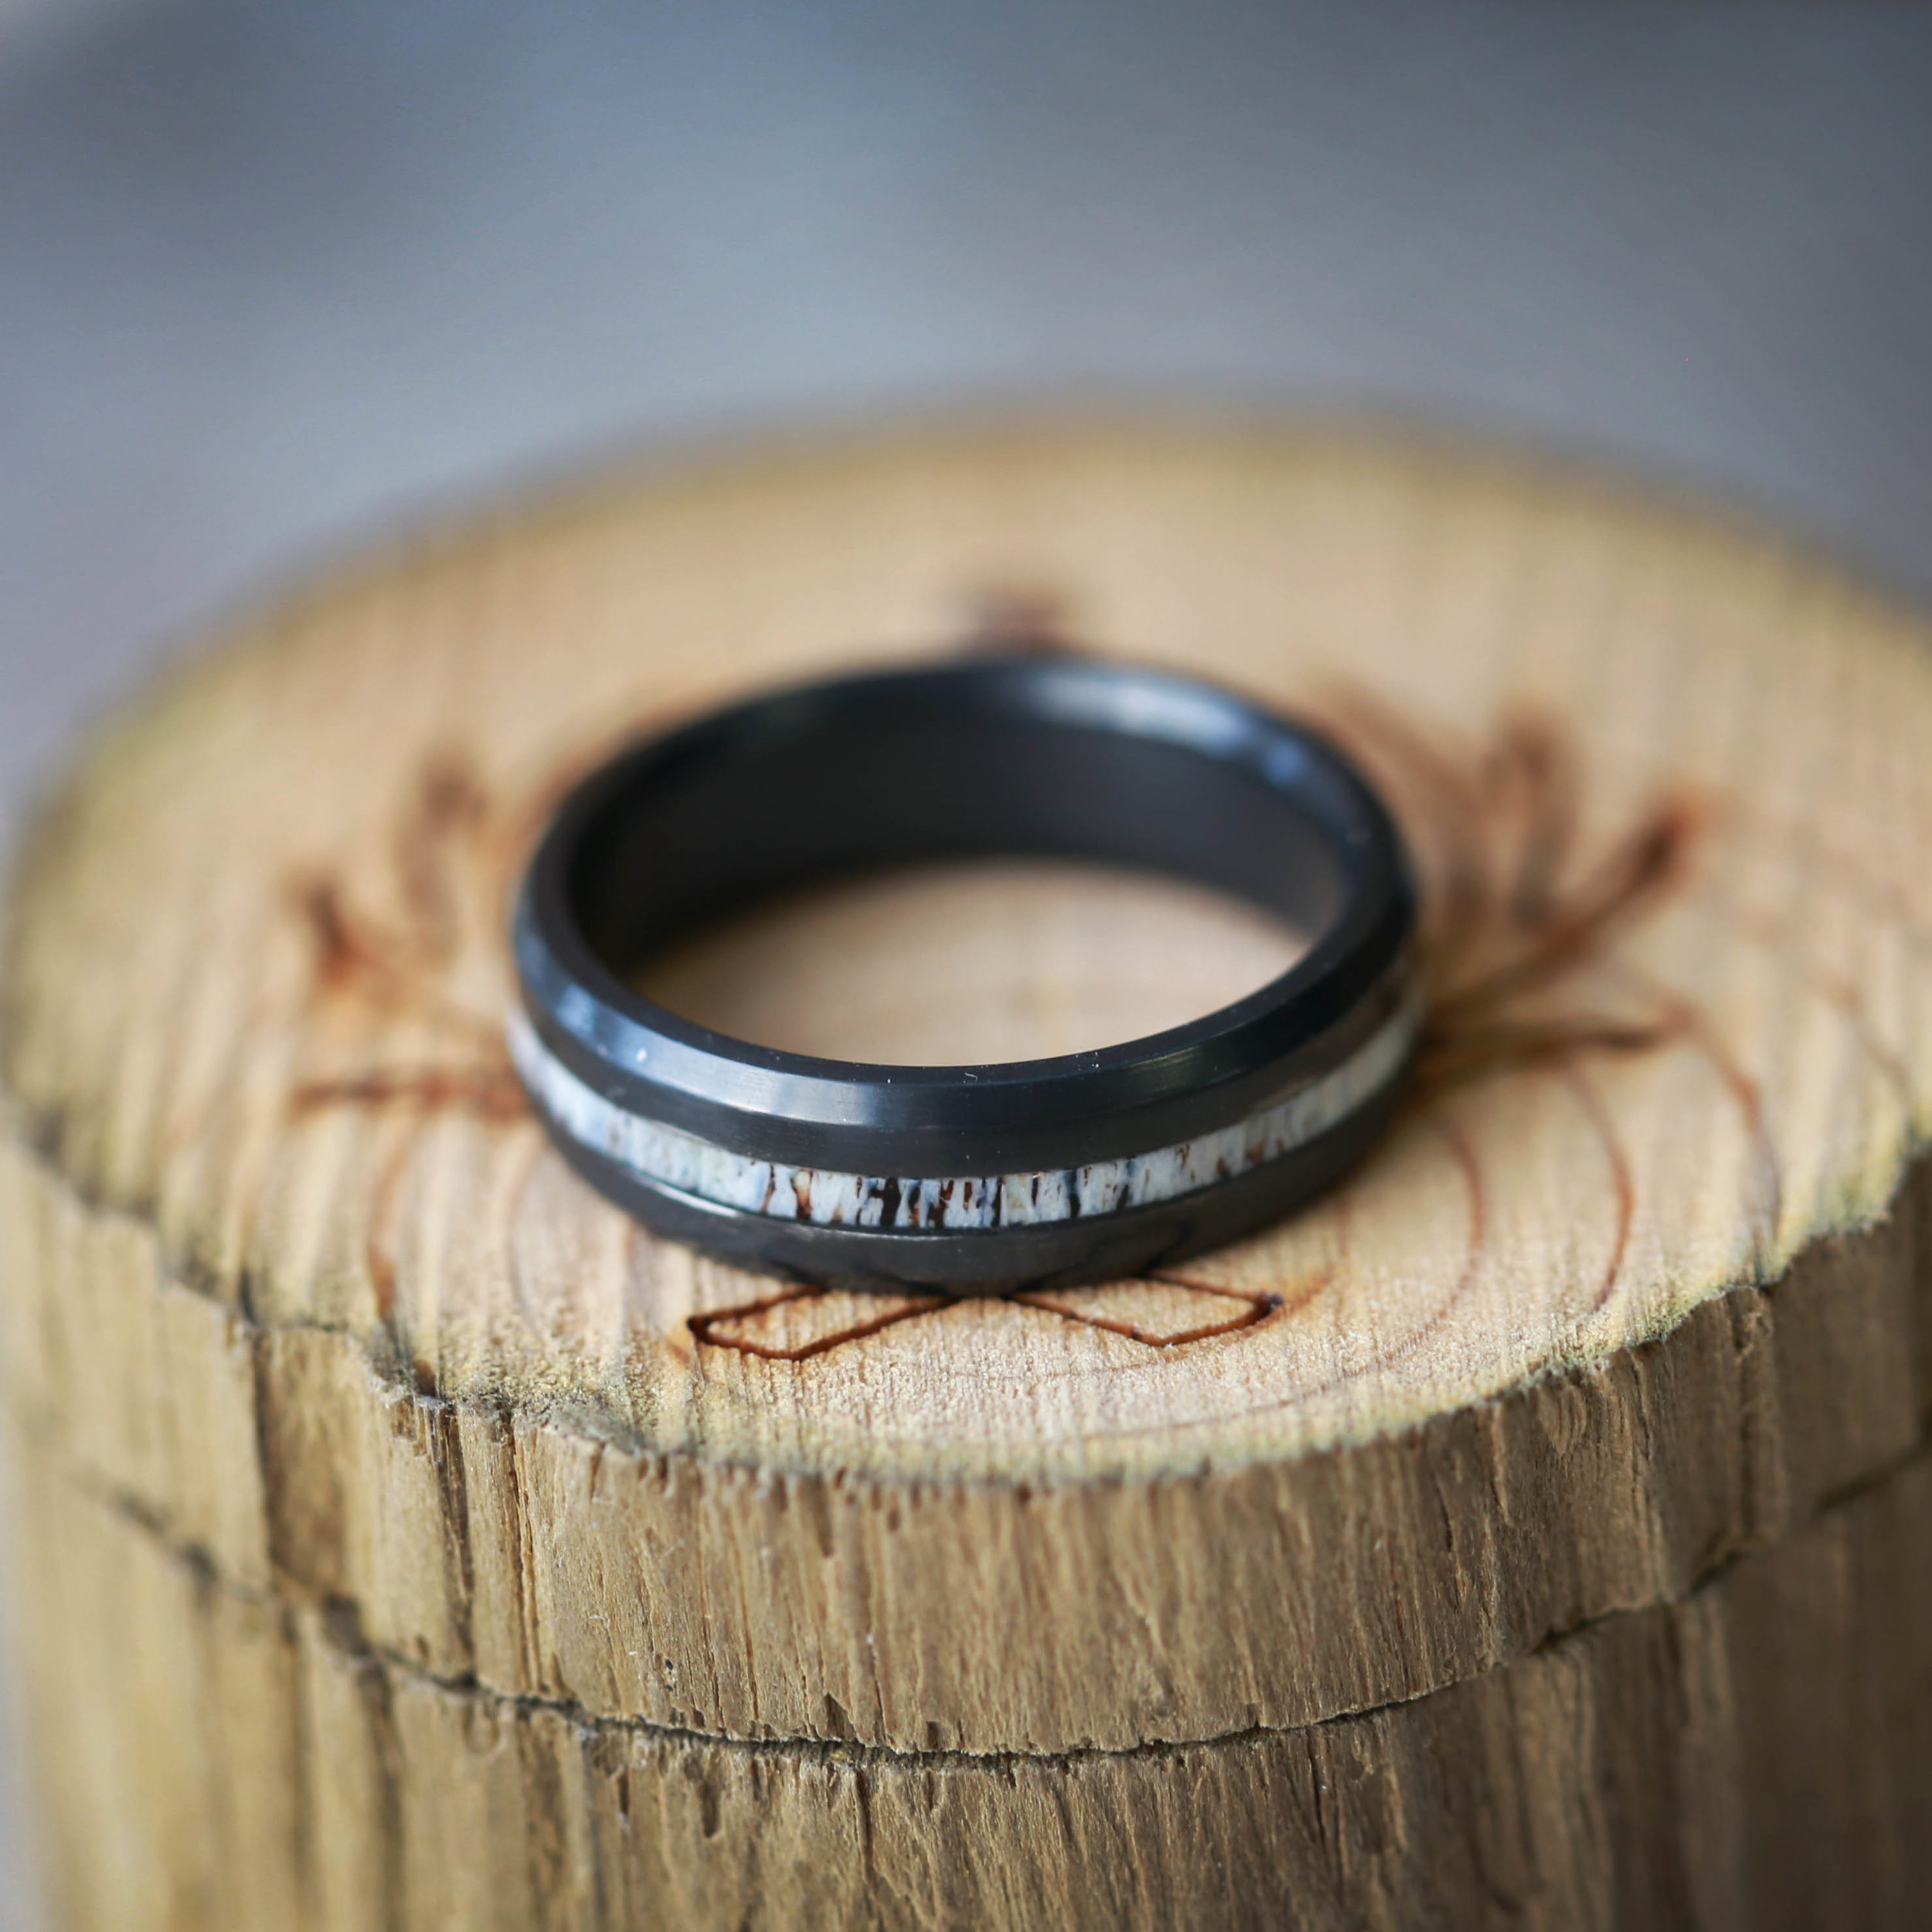 woodandantlerringscontinued antler wedding band ant channel blackz FIRE TREATED BLACK ZIRCONIUM ELK ANTLER WEDDING BAND from 00